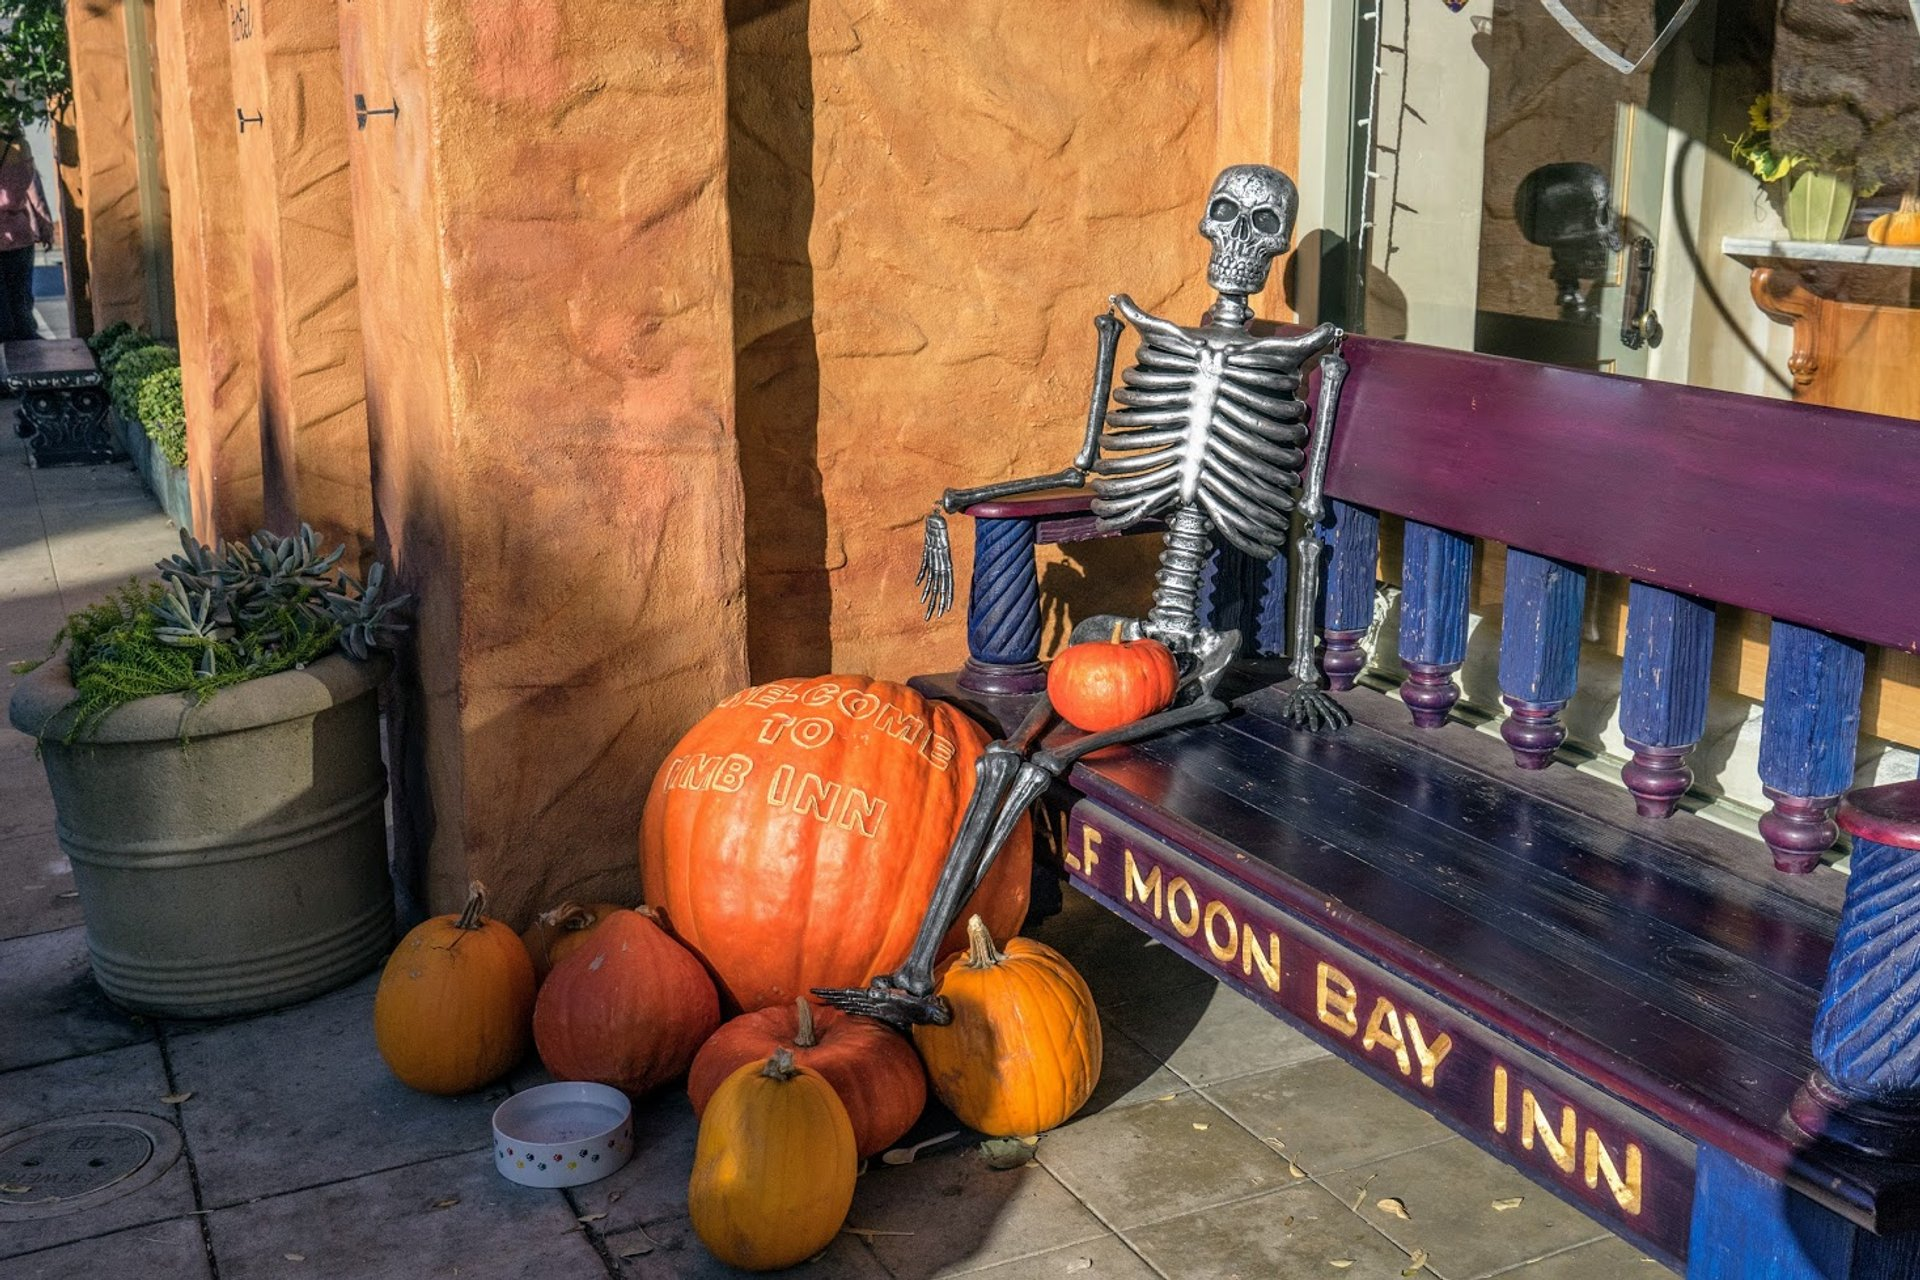 Half Moon Bay Pumpkin Festival in San Francisco - Best Season 2020